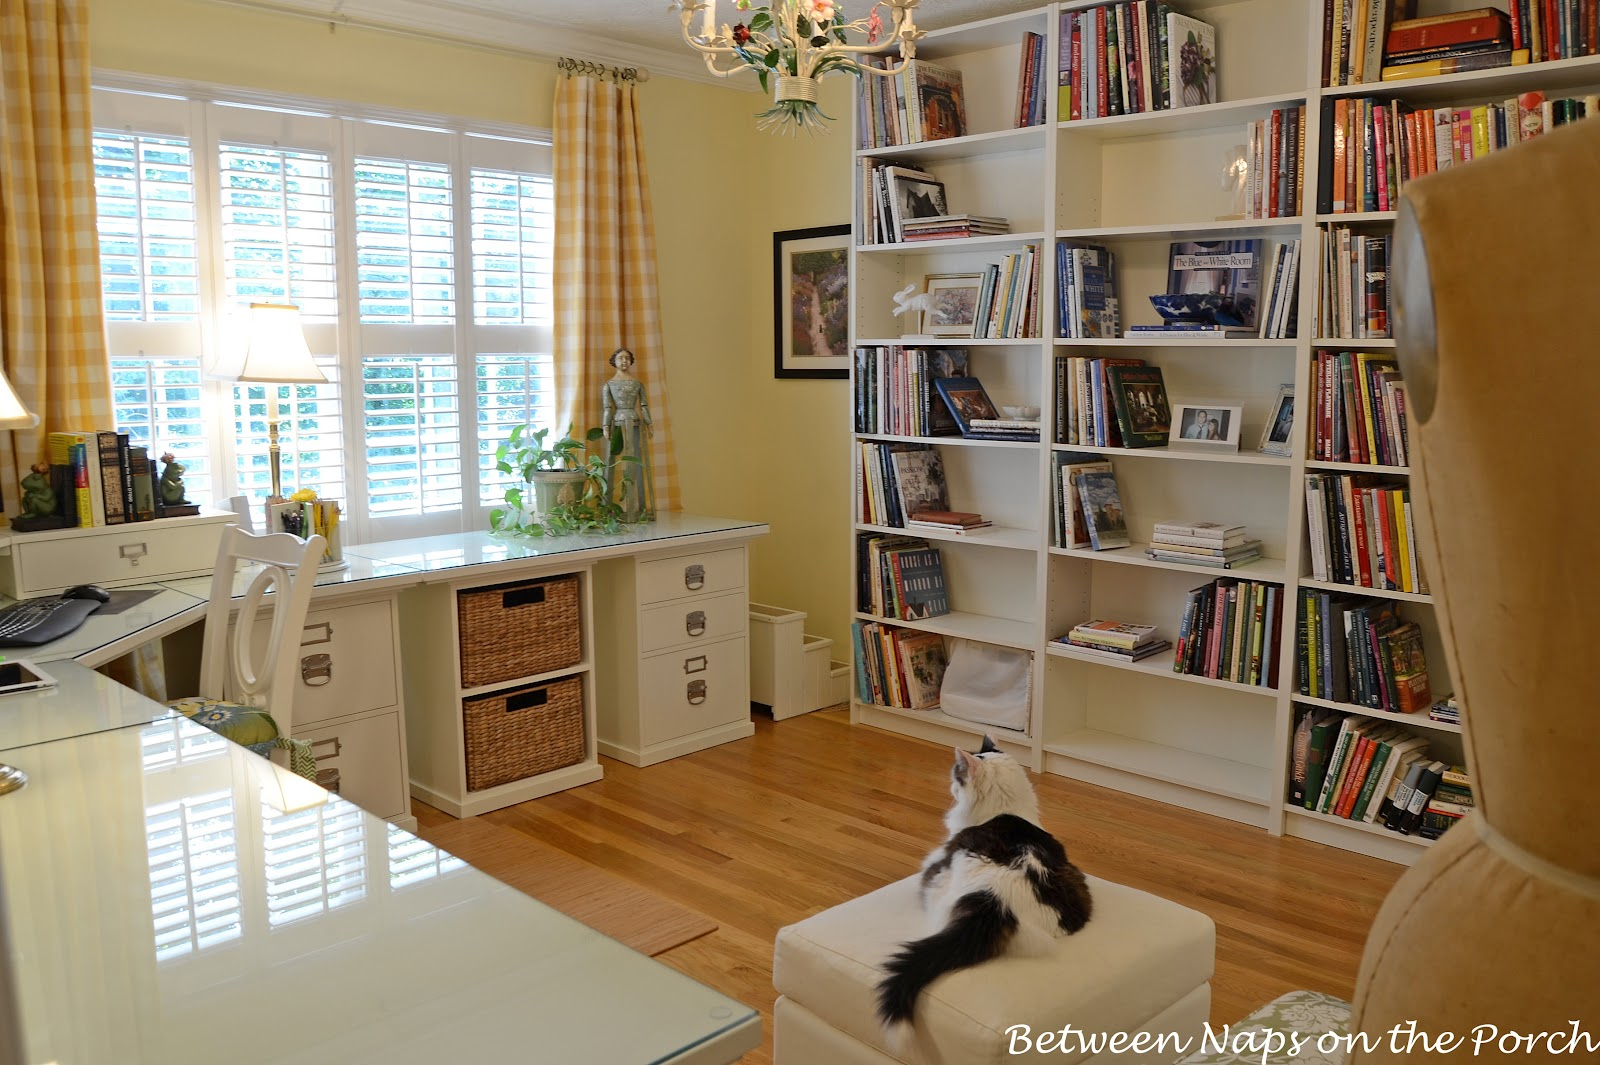 Pottery barn silk curtains - Pottery Barn Bedford Home Office With Ikea Billy Bookshelves